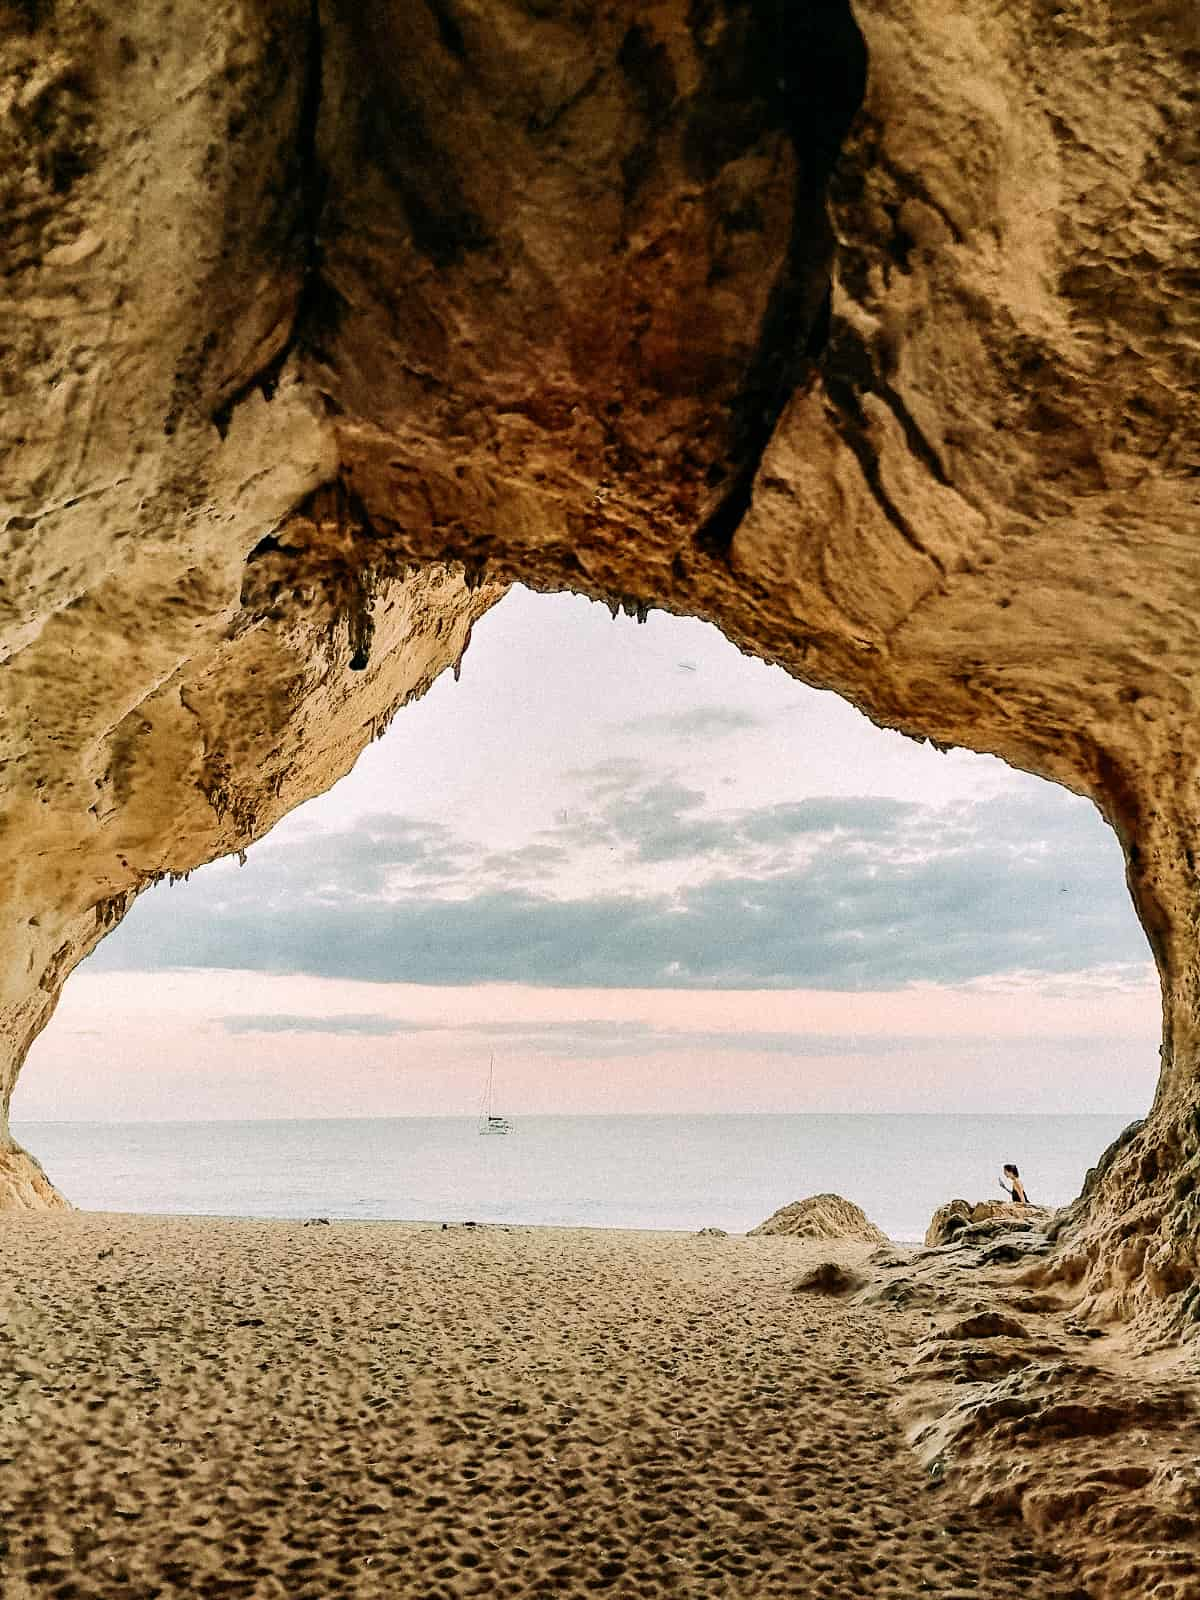 A cove looking out on the ocean with sand under neither